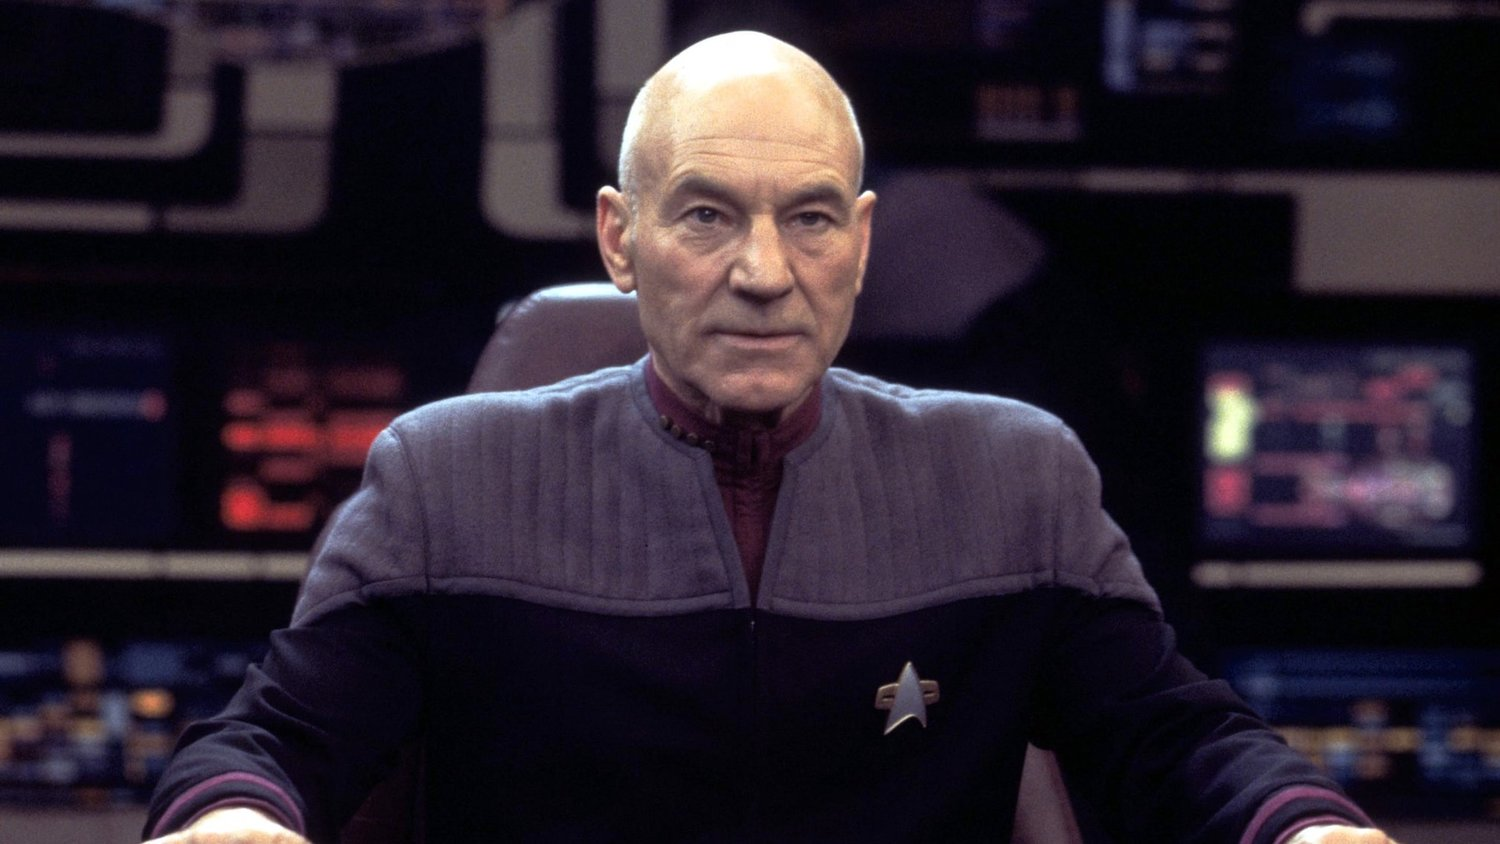 EXCLUSIVE: STAR TREK: PICARD Series Update With Character Breakdowns